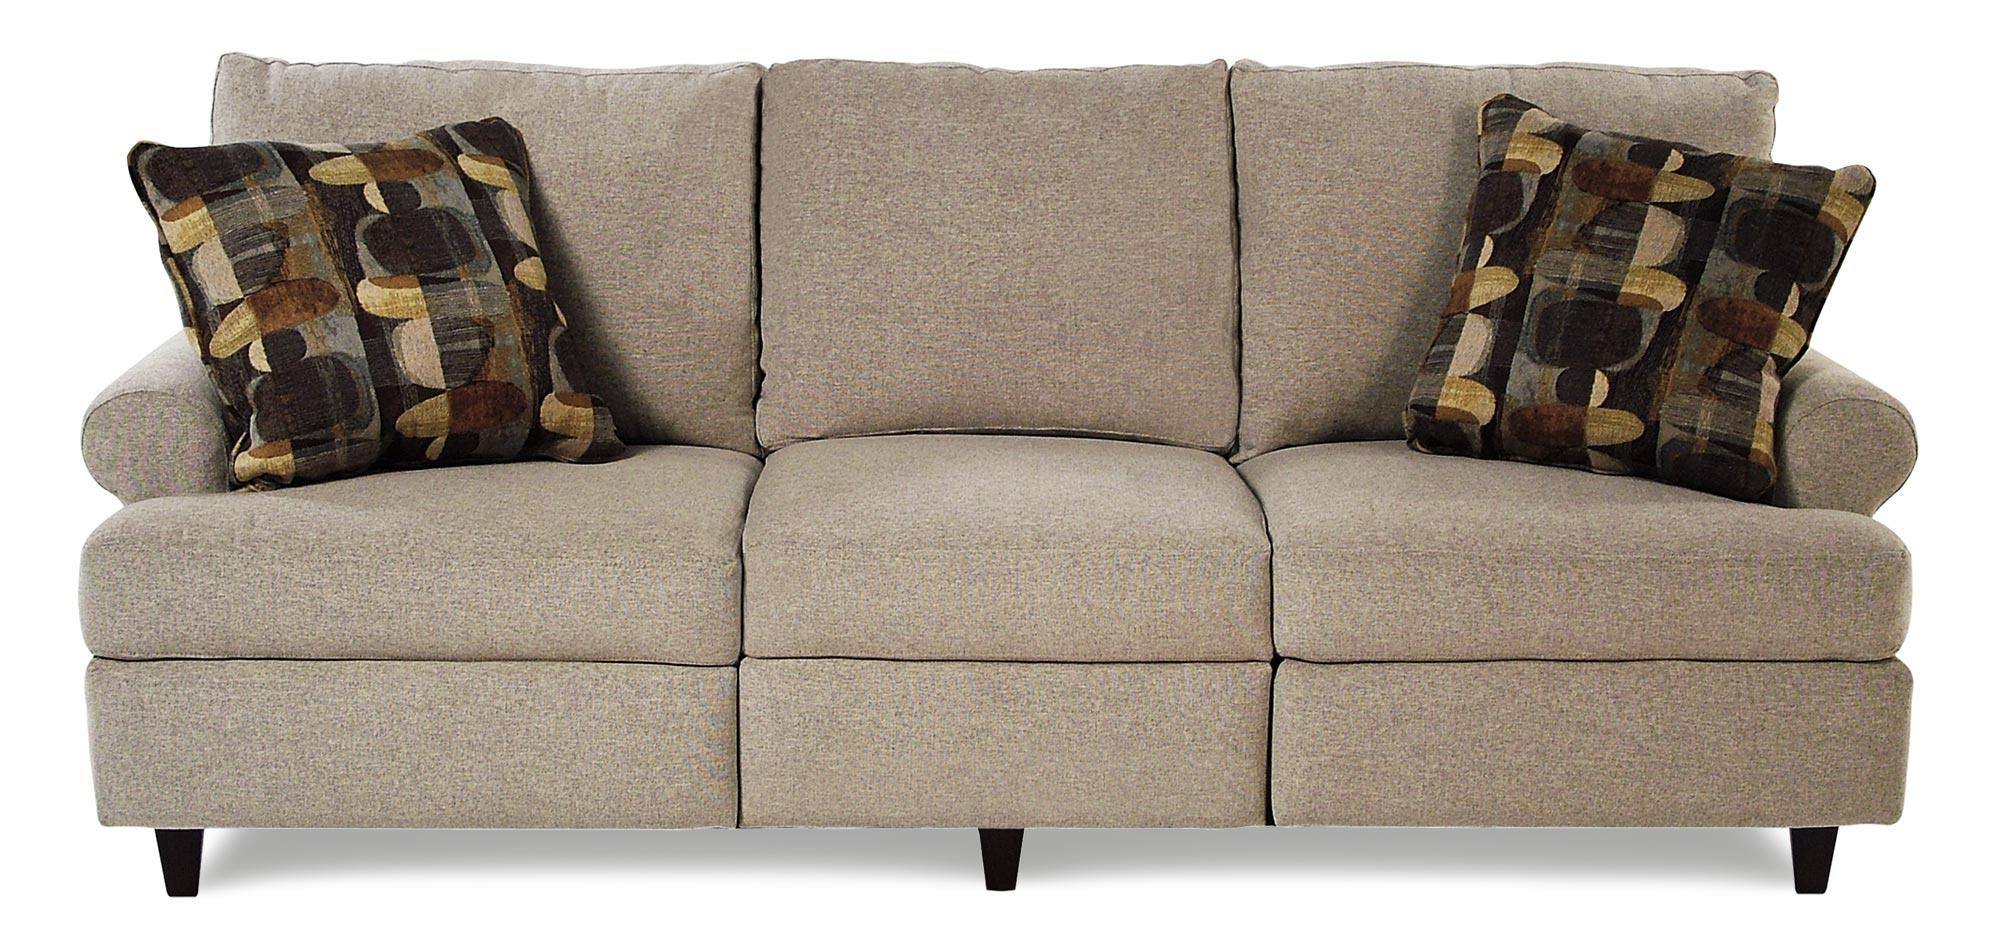 Trisha Yearwood Home Collection by Klaussner Birchwood Reclining Sofa - Item Number: 26403-PWRS-GB